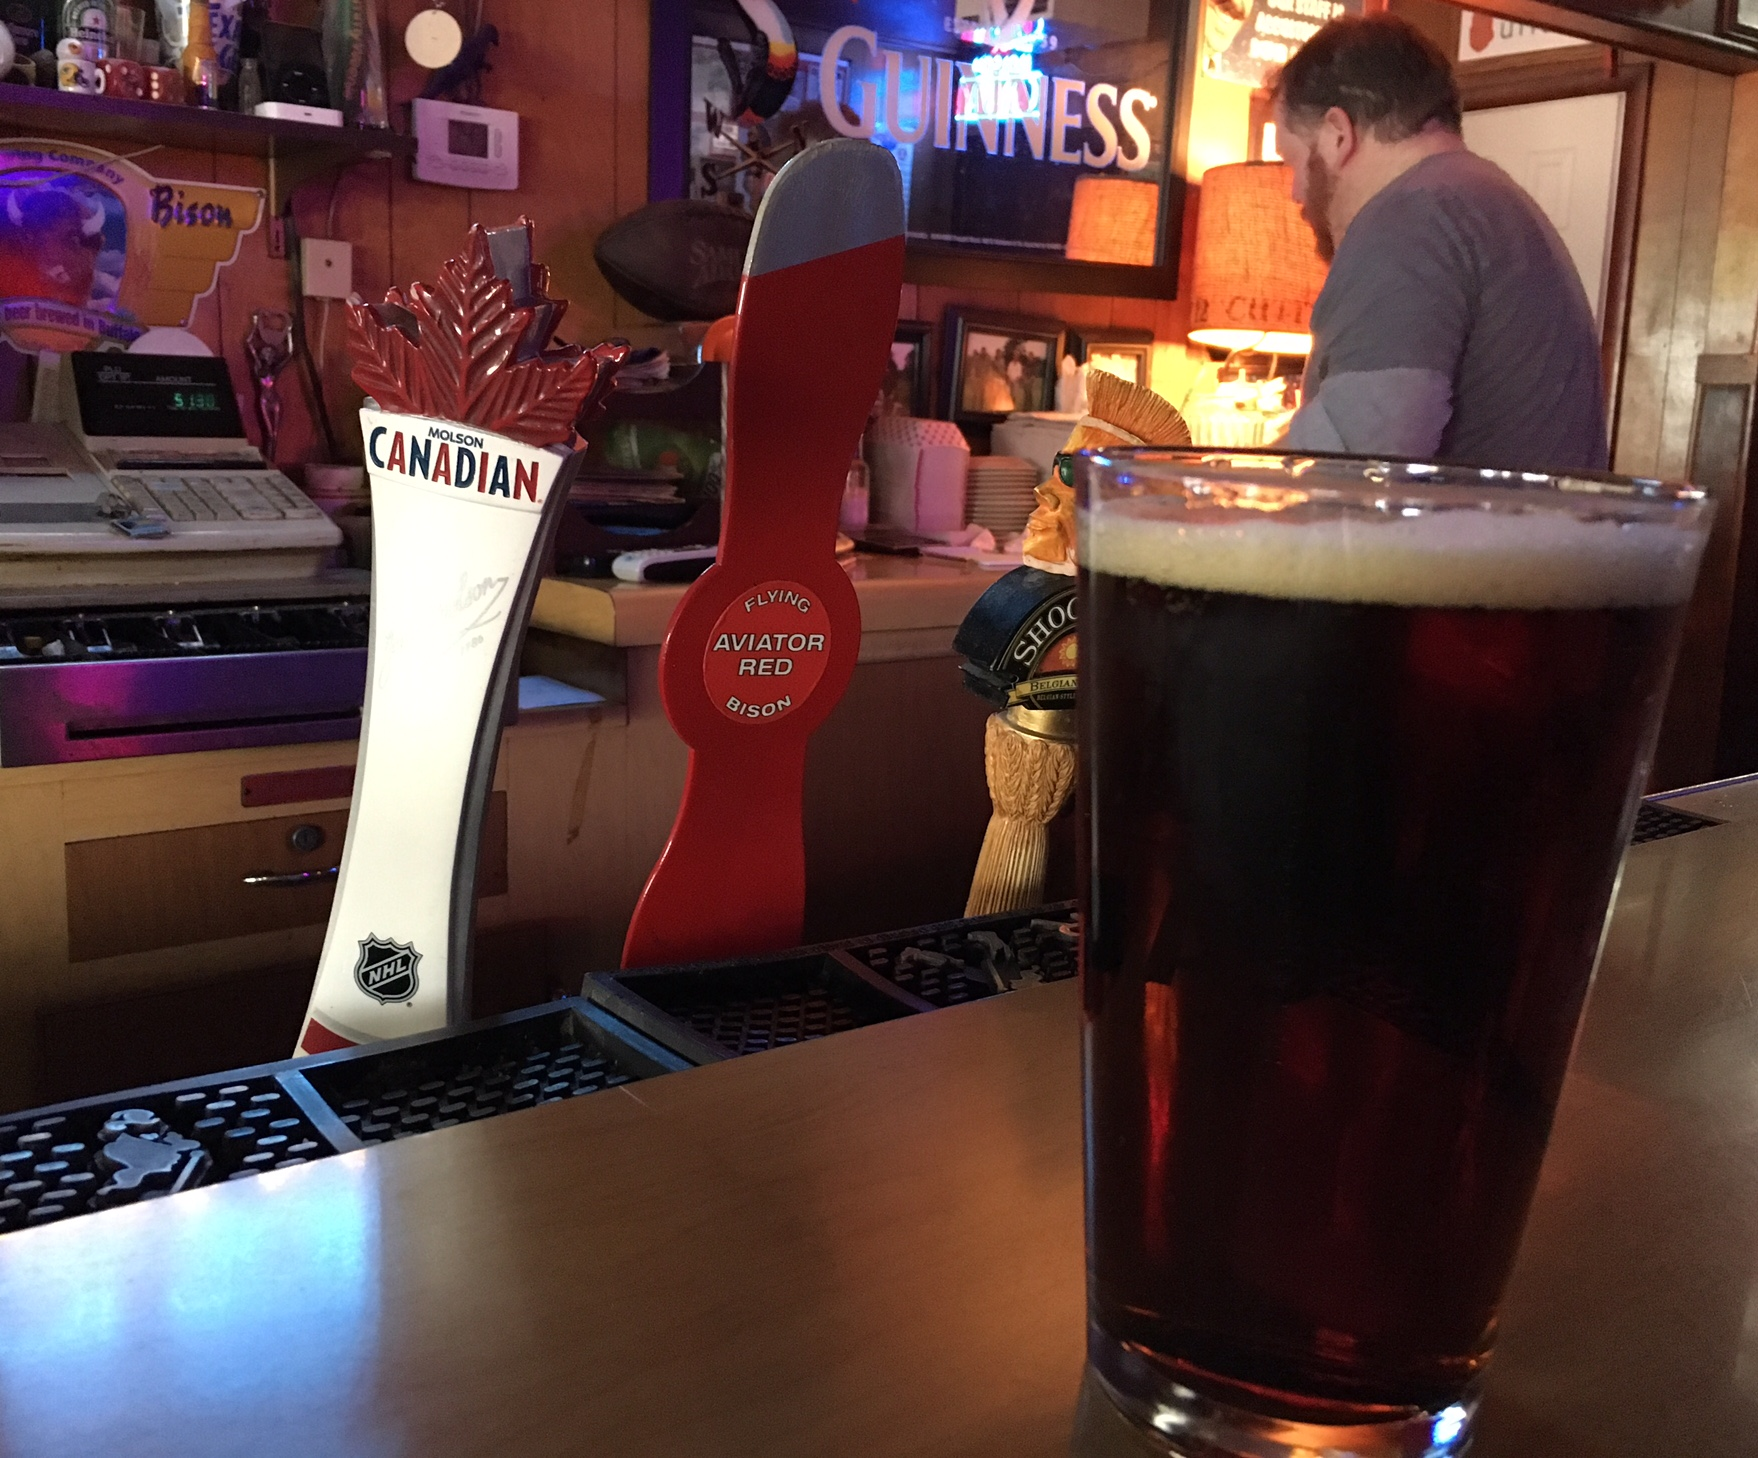 Flying Bison's Aviator Red is available on draft at South Buffalo's Nine-Eleven Tavern.